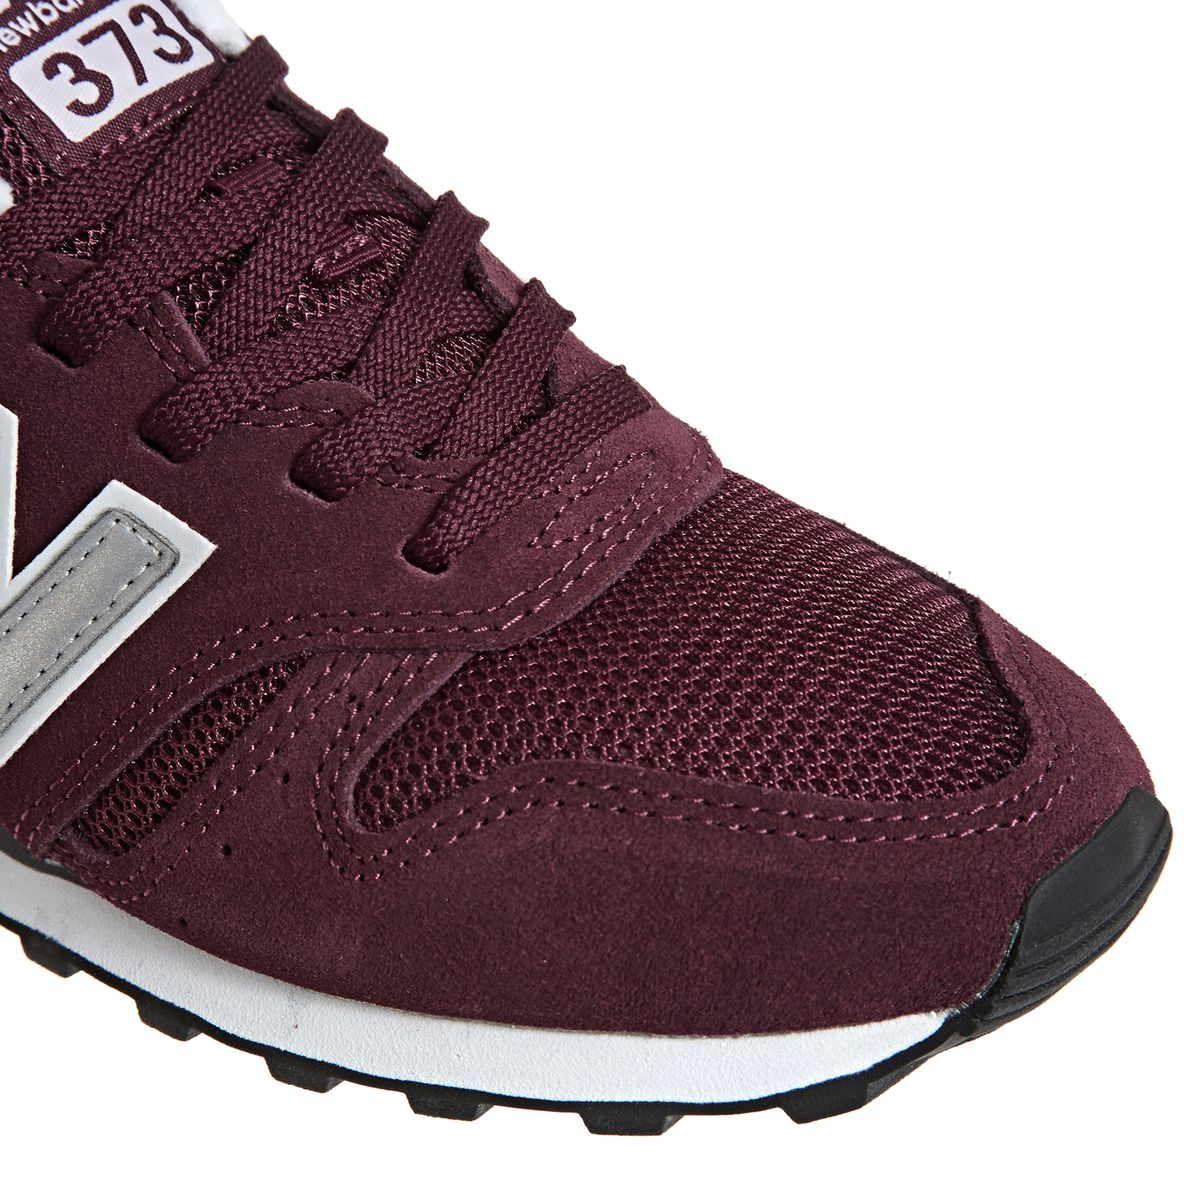 New Balance Ml373 Shoes | Free Delivery